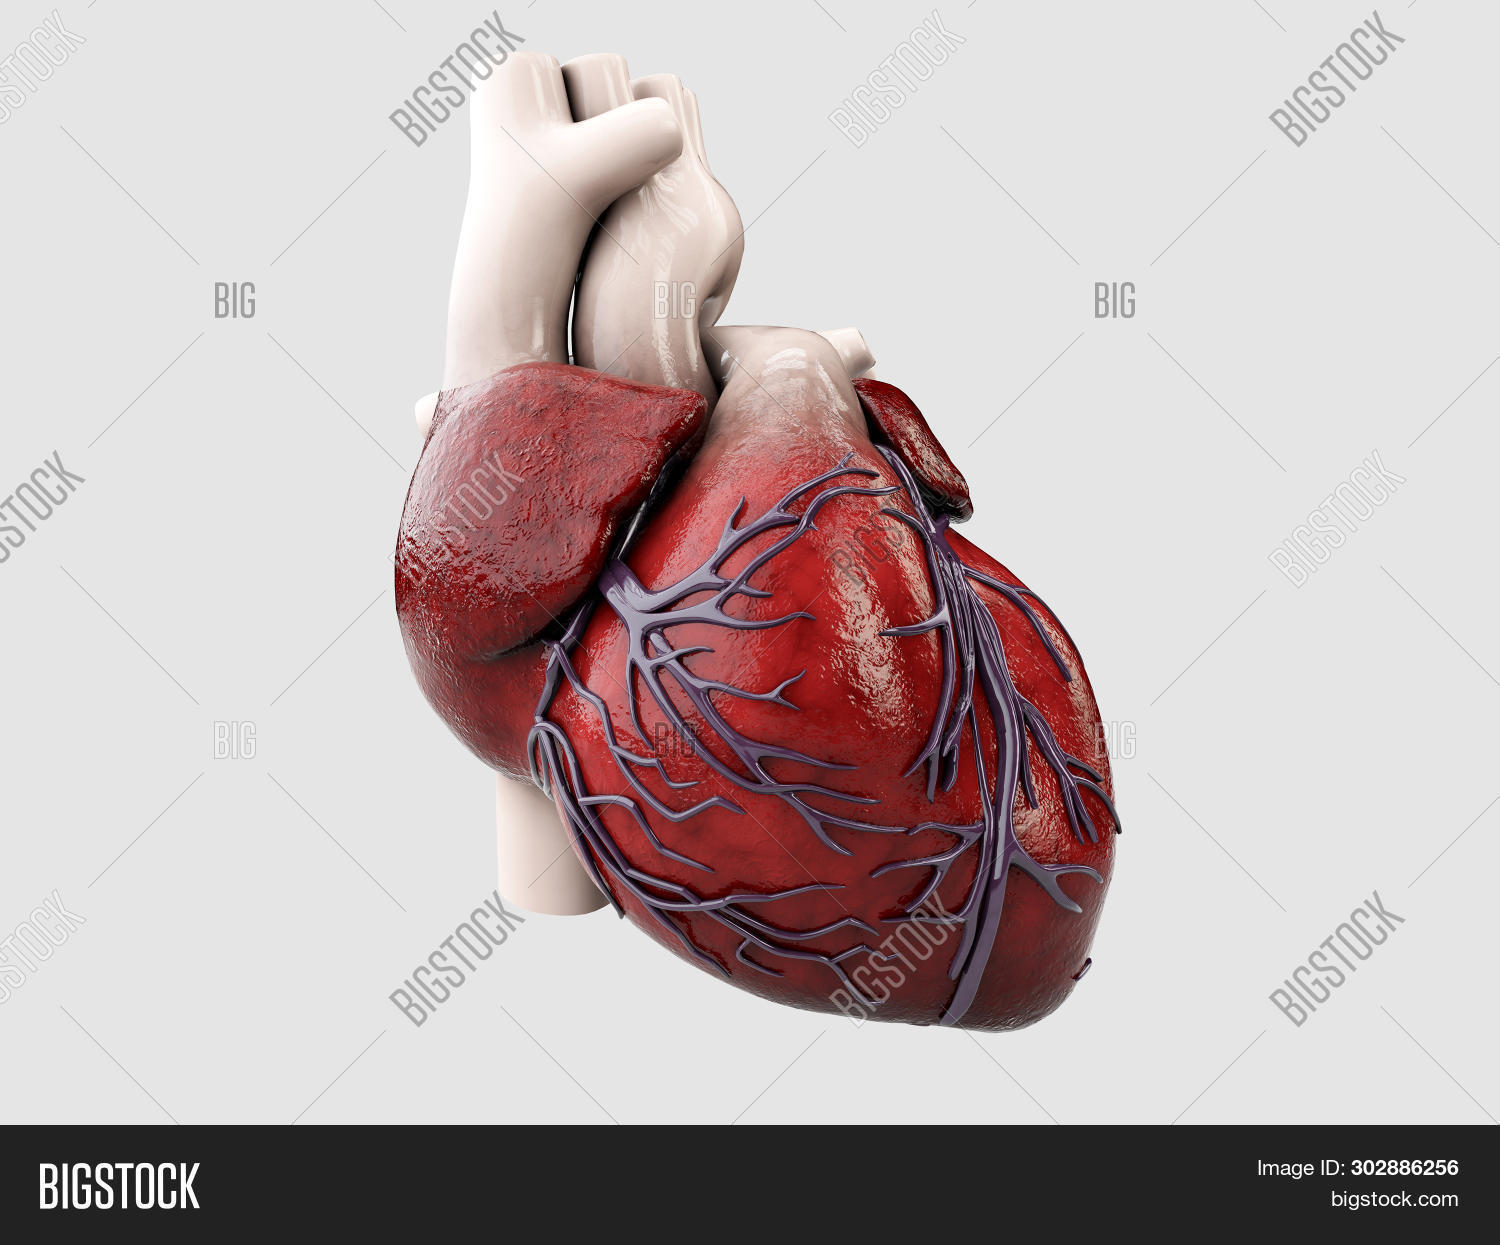 3drendering,anatomy,backgrounds,biology,black,blue,body,brain,cardiology,cerebellum,cerebral,coronary,cortex,face,glowing,head,headache,health,health-care,heart,human,illness,illustration,inflammation,inside,intelligence,life,male,medical,medicine,men,nervous,organ,pain,people,person,physiology,ray,real,red,rendering,scan,science,skeleton,skull,spine,stress,system,transparent,x-ray